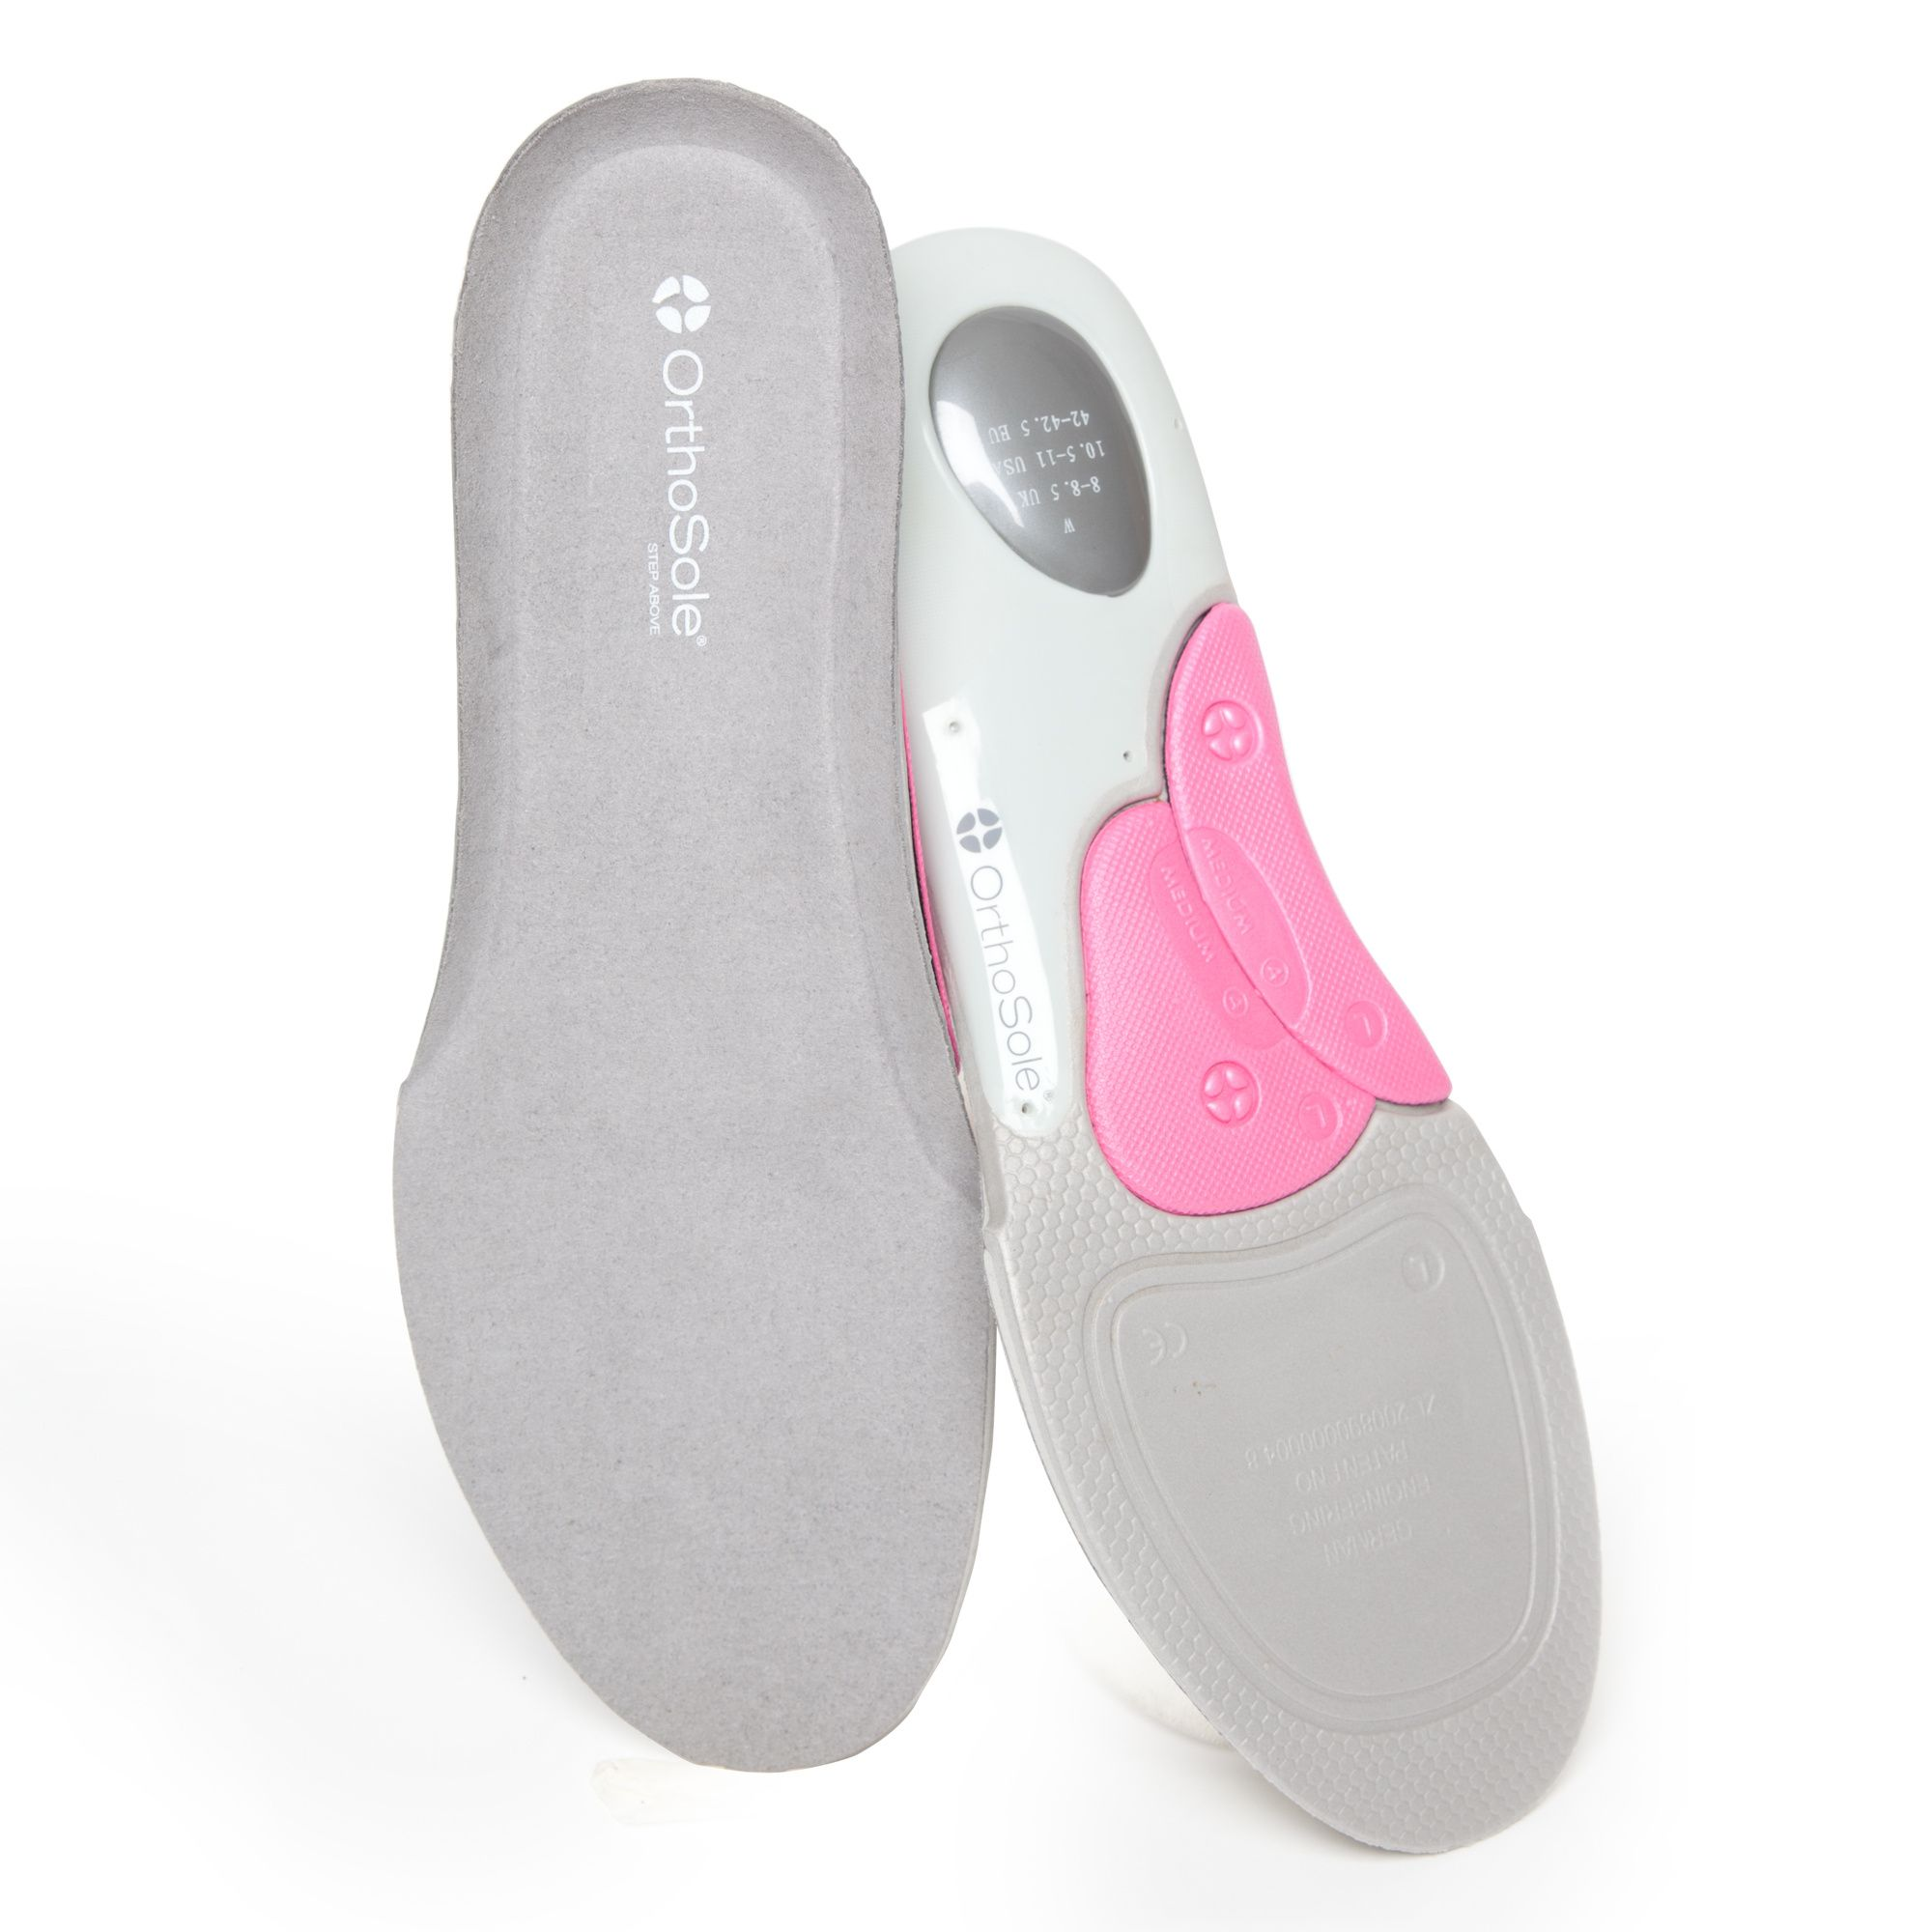 ORTHOSOLE Women's Max Cushion Insoles